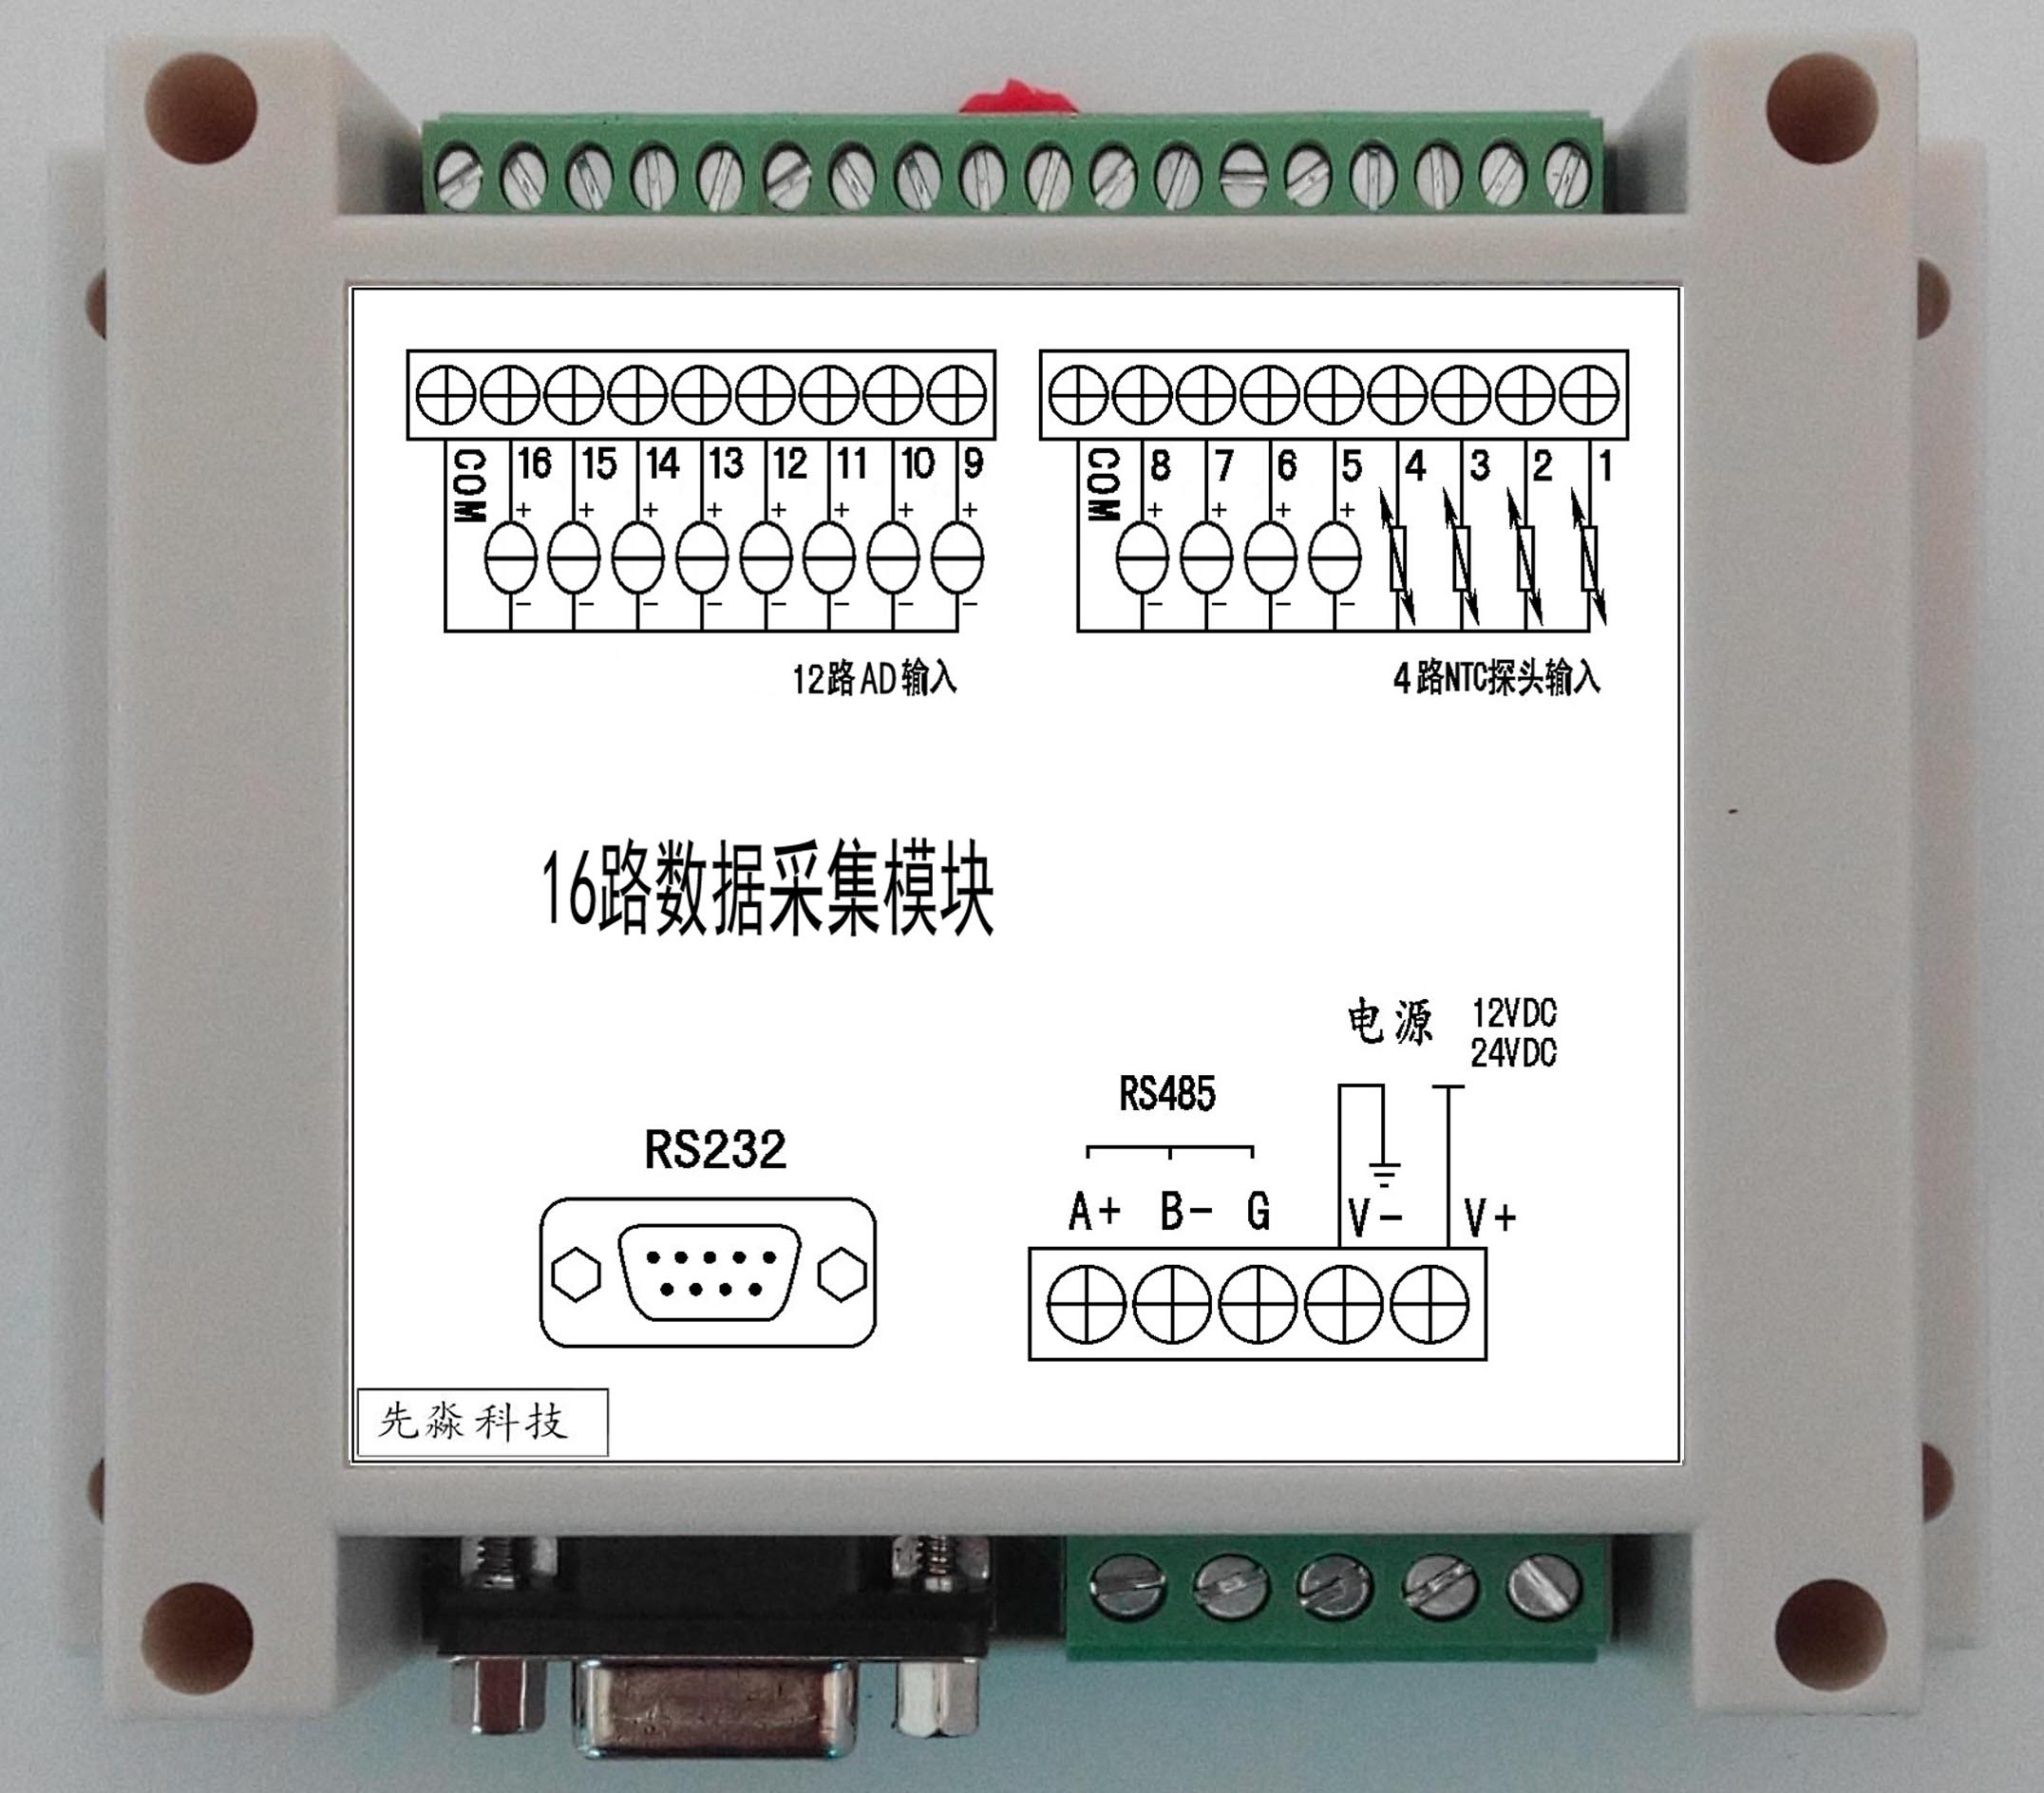 4 NTC+12 Road  Temperature and Current Voltage MODBUS-RTU Support Configuration for 4 ~ 20mA Acquisition Module simcom 5360 module 3g modem bulk sms sending and receiving simcom 3g module support imei change